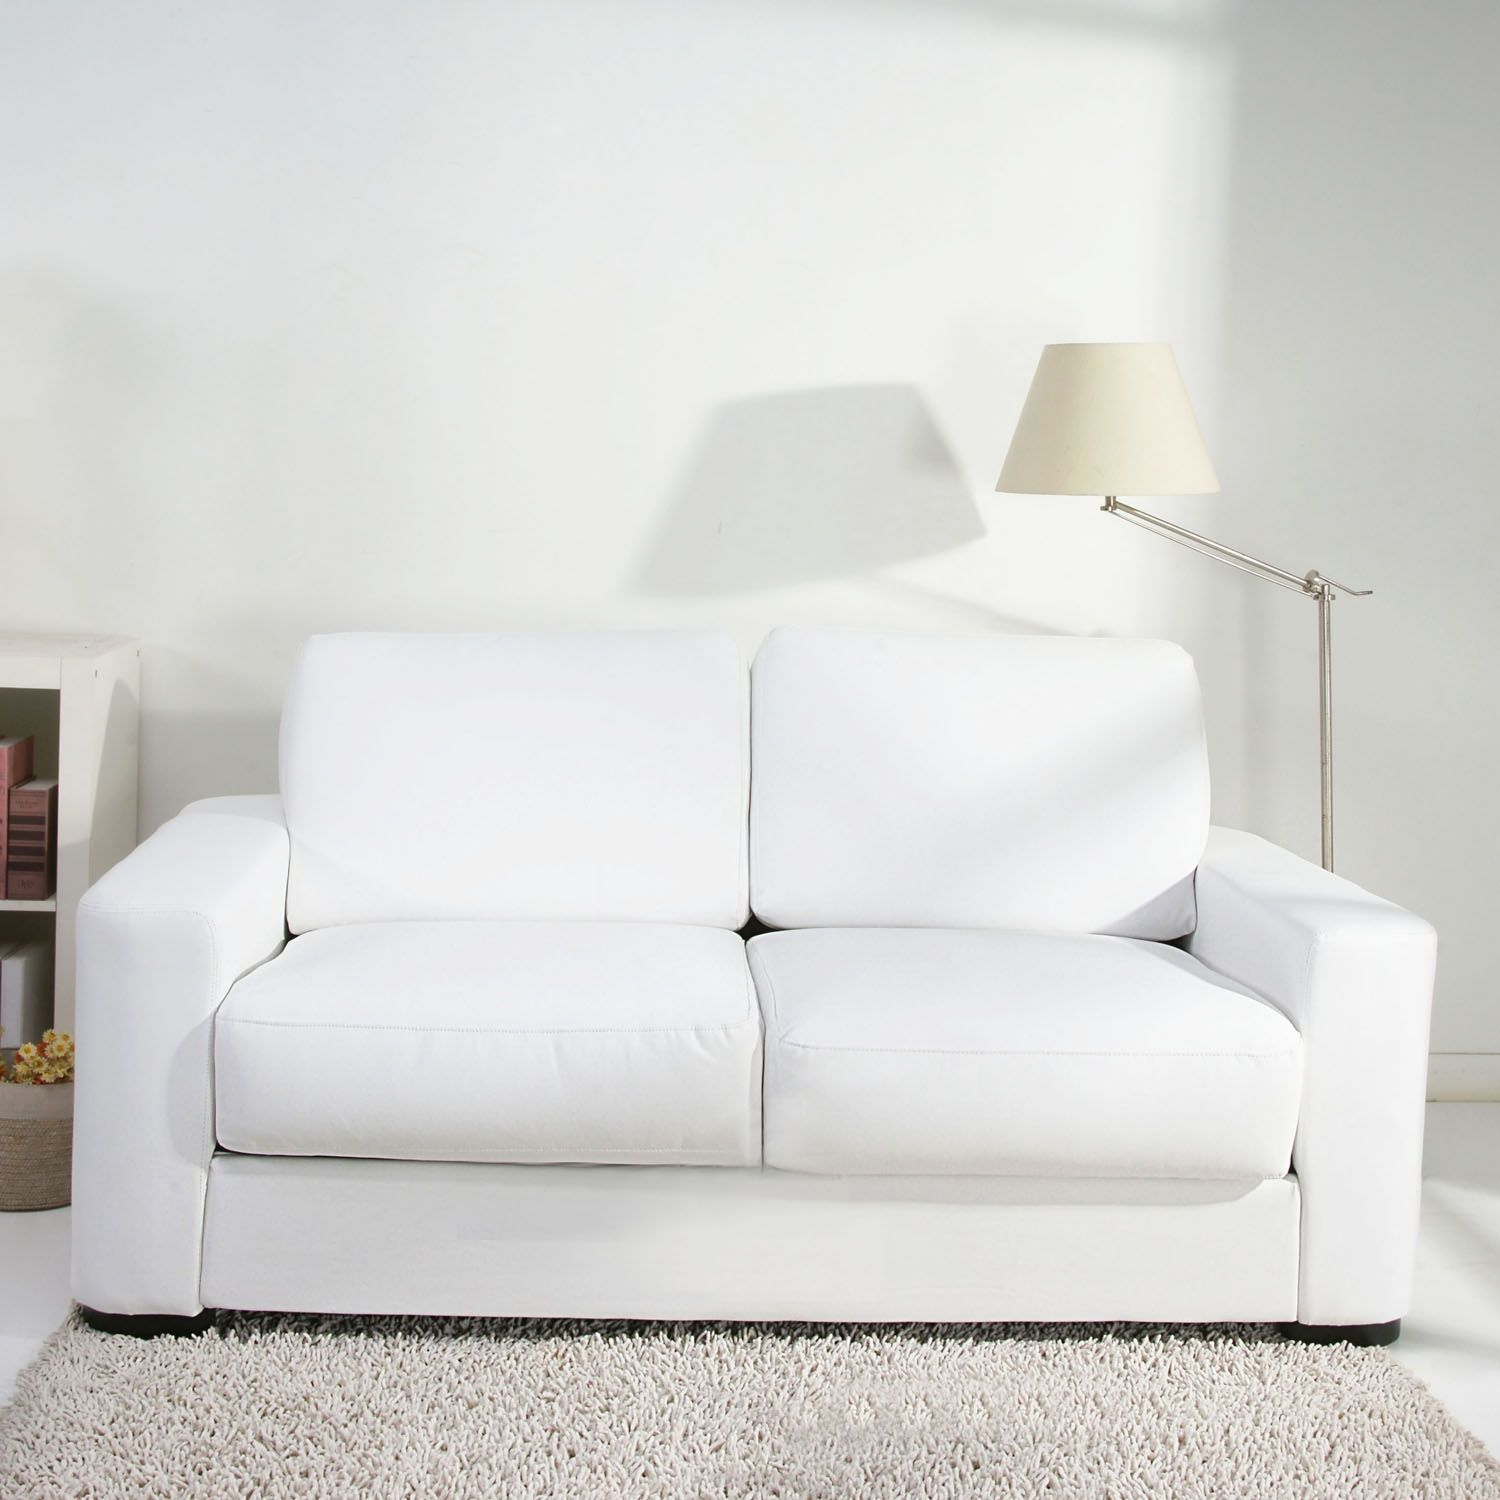 Small White Leather Sofa Bed White Leather Sofa Bed White